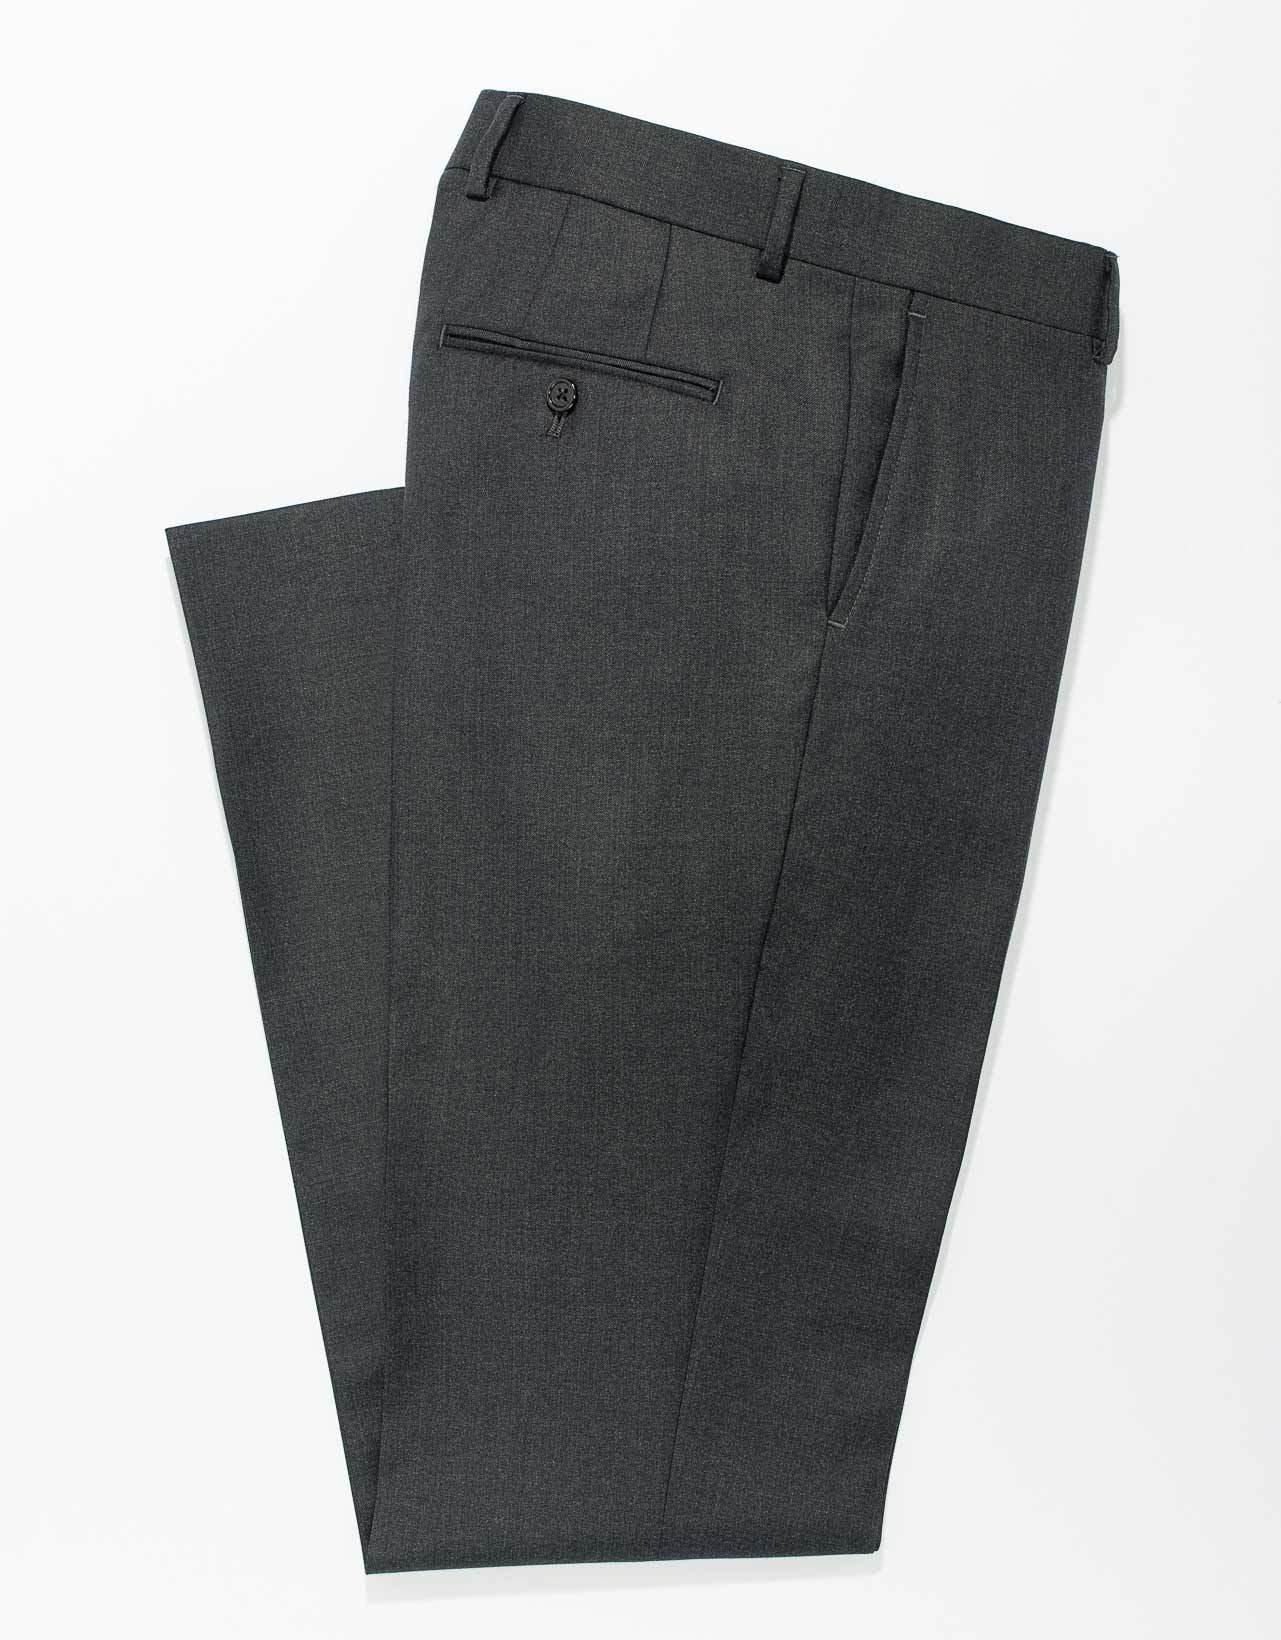 CHARCOAL WOOL - TRIM FIT